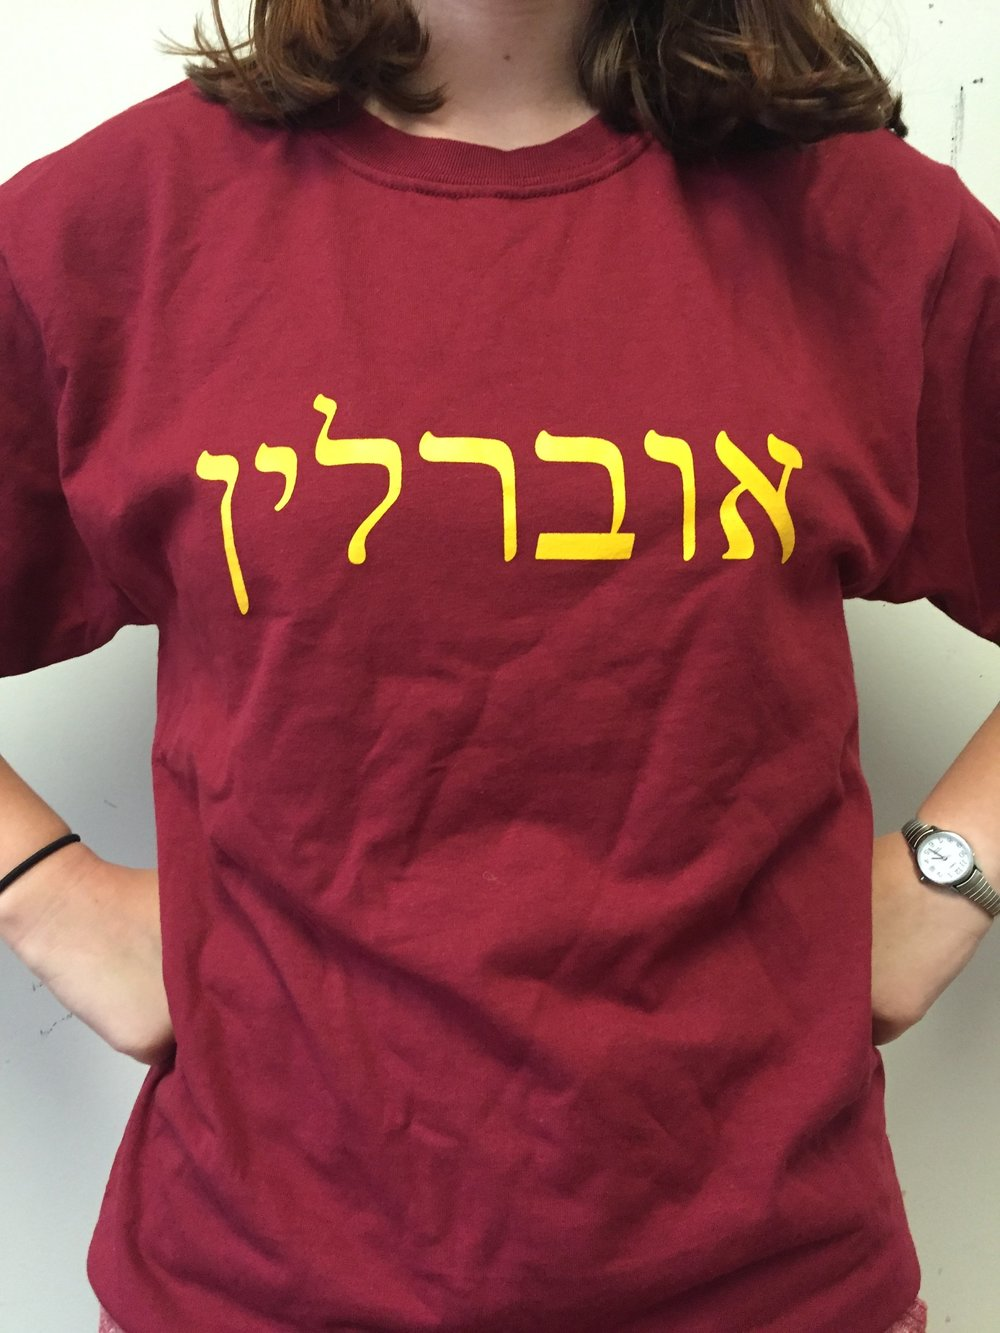 Want some Oberlin Hillel swag? - To purchase one of our amazing Oberlin Hillel tee-shirts (sizes: adult S/M/L), please contact Talia Rodwin, at trodwin@oberlin.edu. Shirts will be around $10-15 depending on shipping costs.